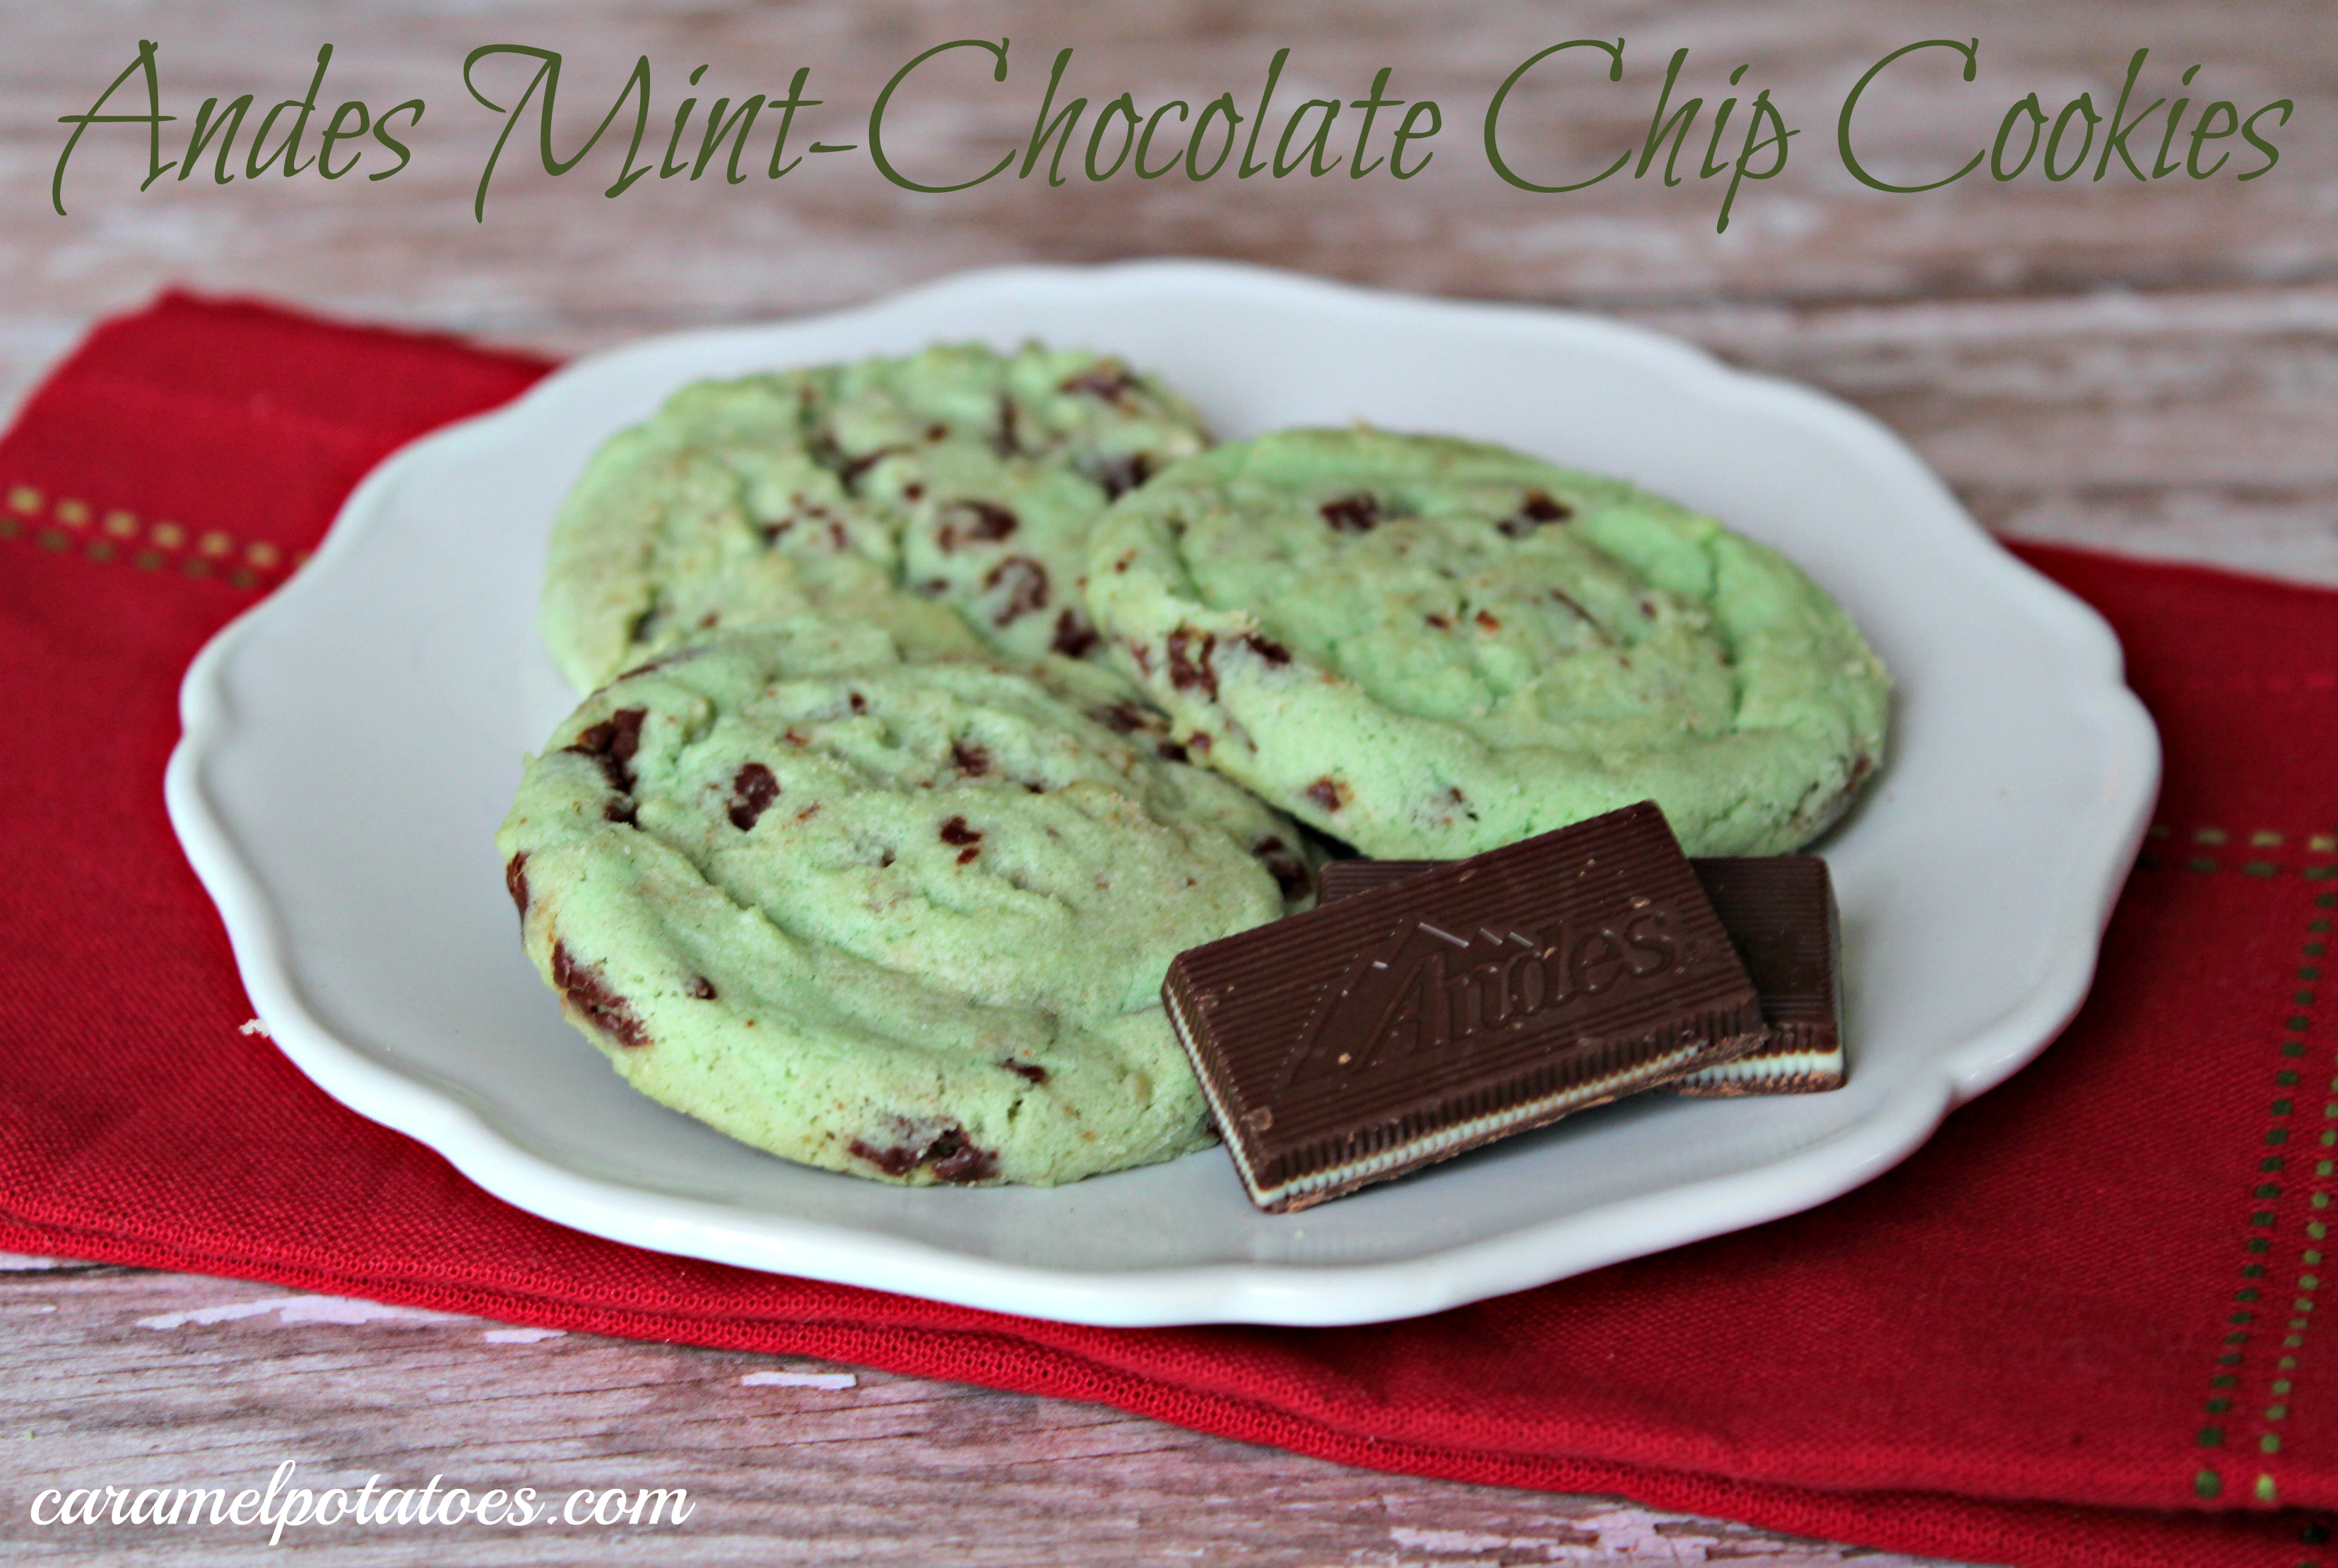 Caramel Potatoes » Andes Mint Chocolate Chip Cookies